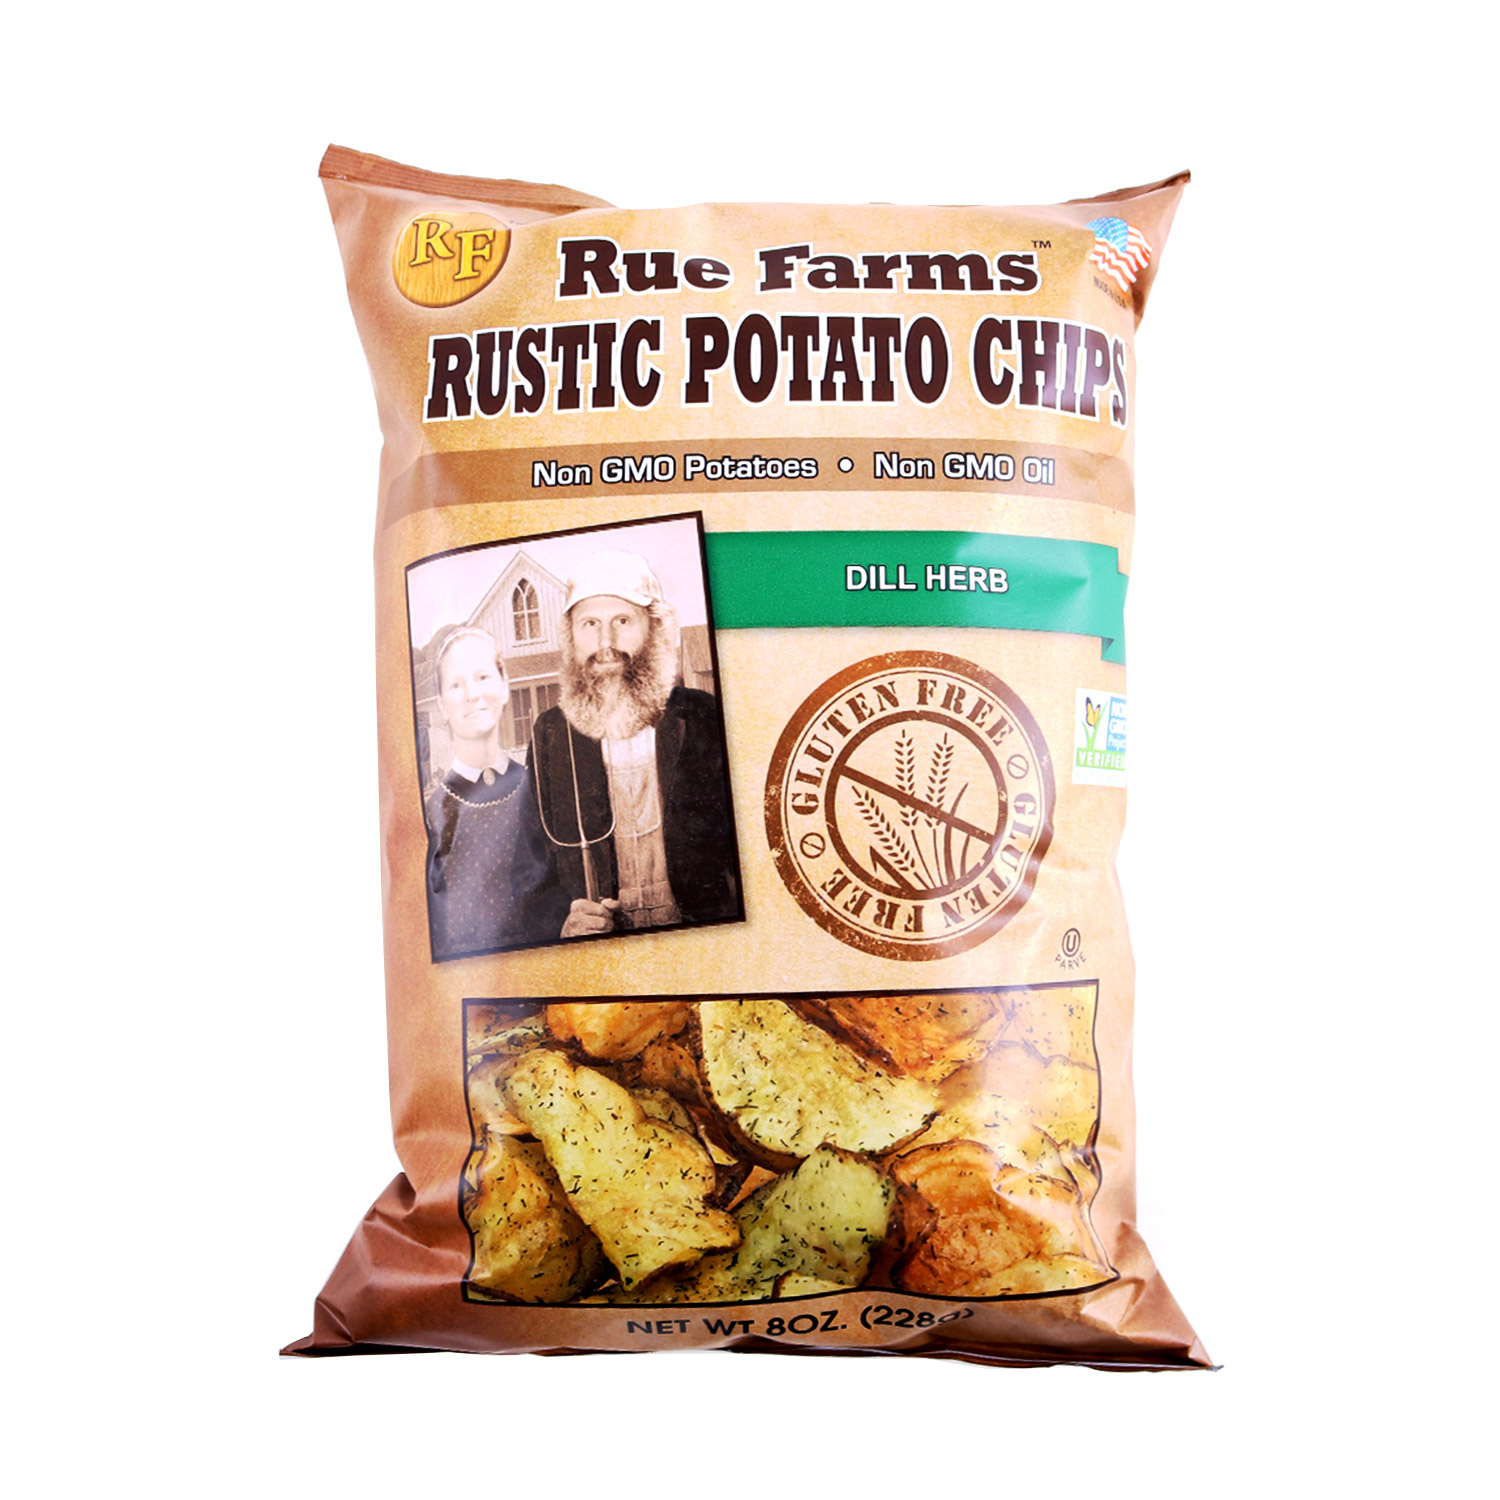 Rustic Potato Chips, Dill Herb